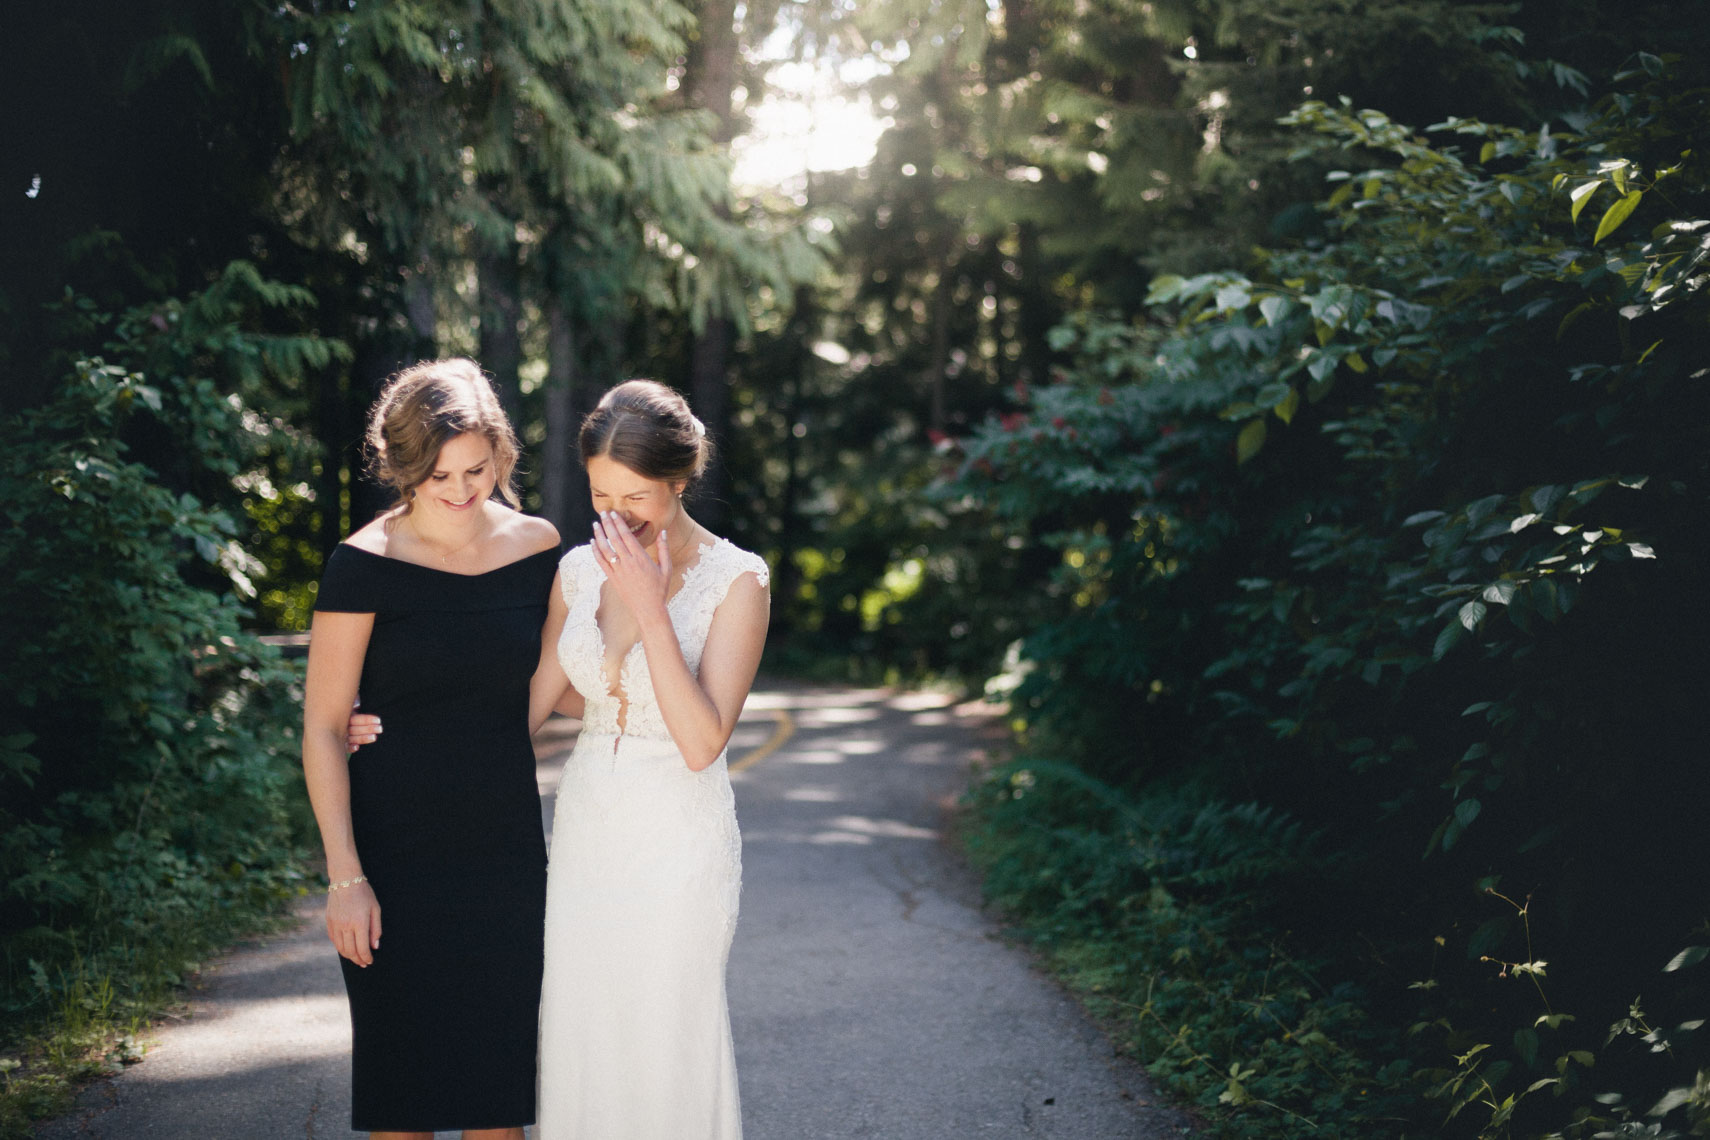 Bride and bridesmaid share a candid moment in the forest of Whistler BC